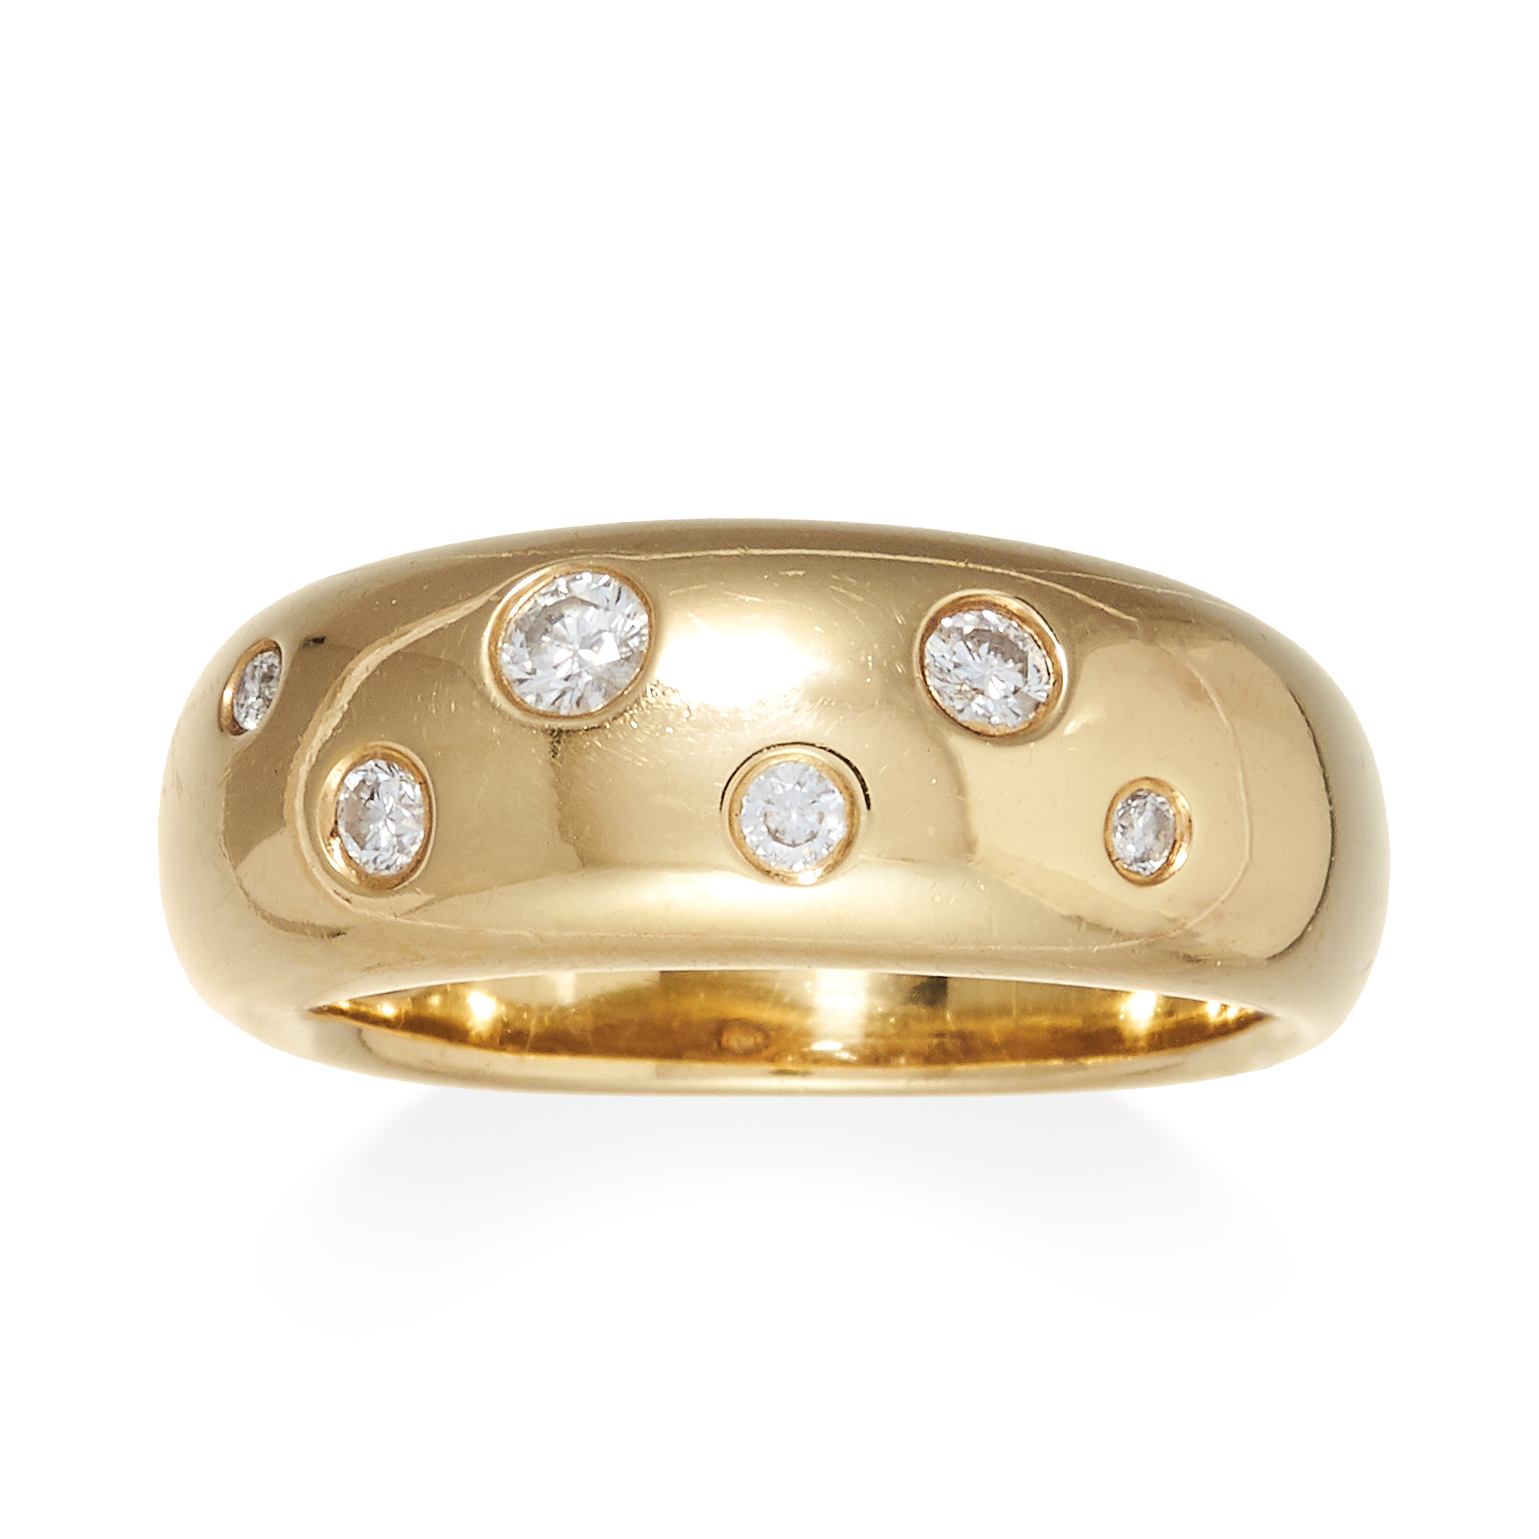 A DIAMOND BOMBE RING in 18ct yellow gold, jewelled with six round cut diamonds, stamped 18K, size